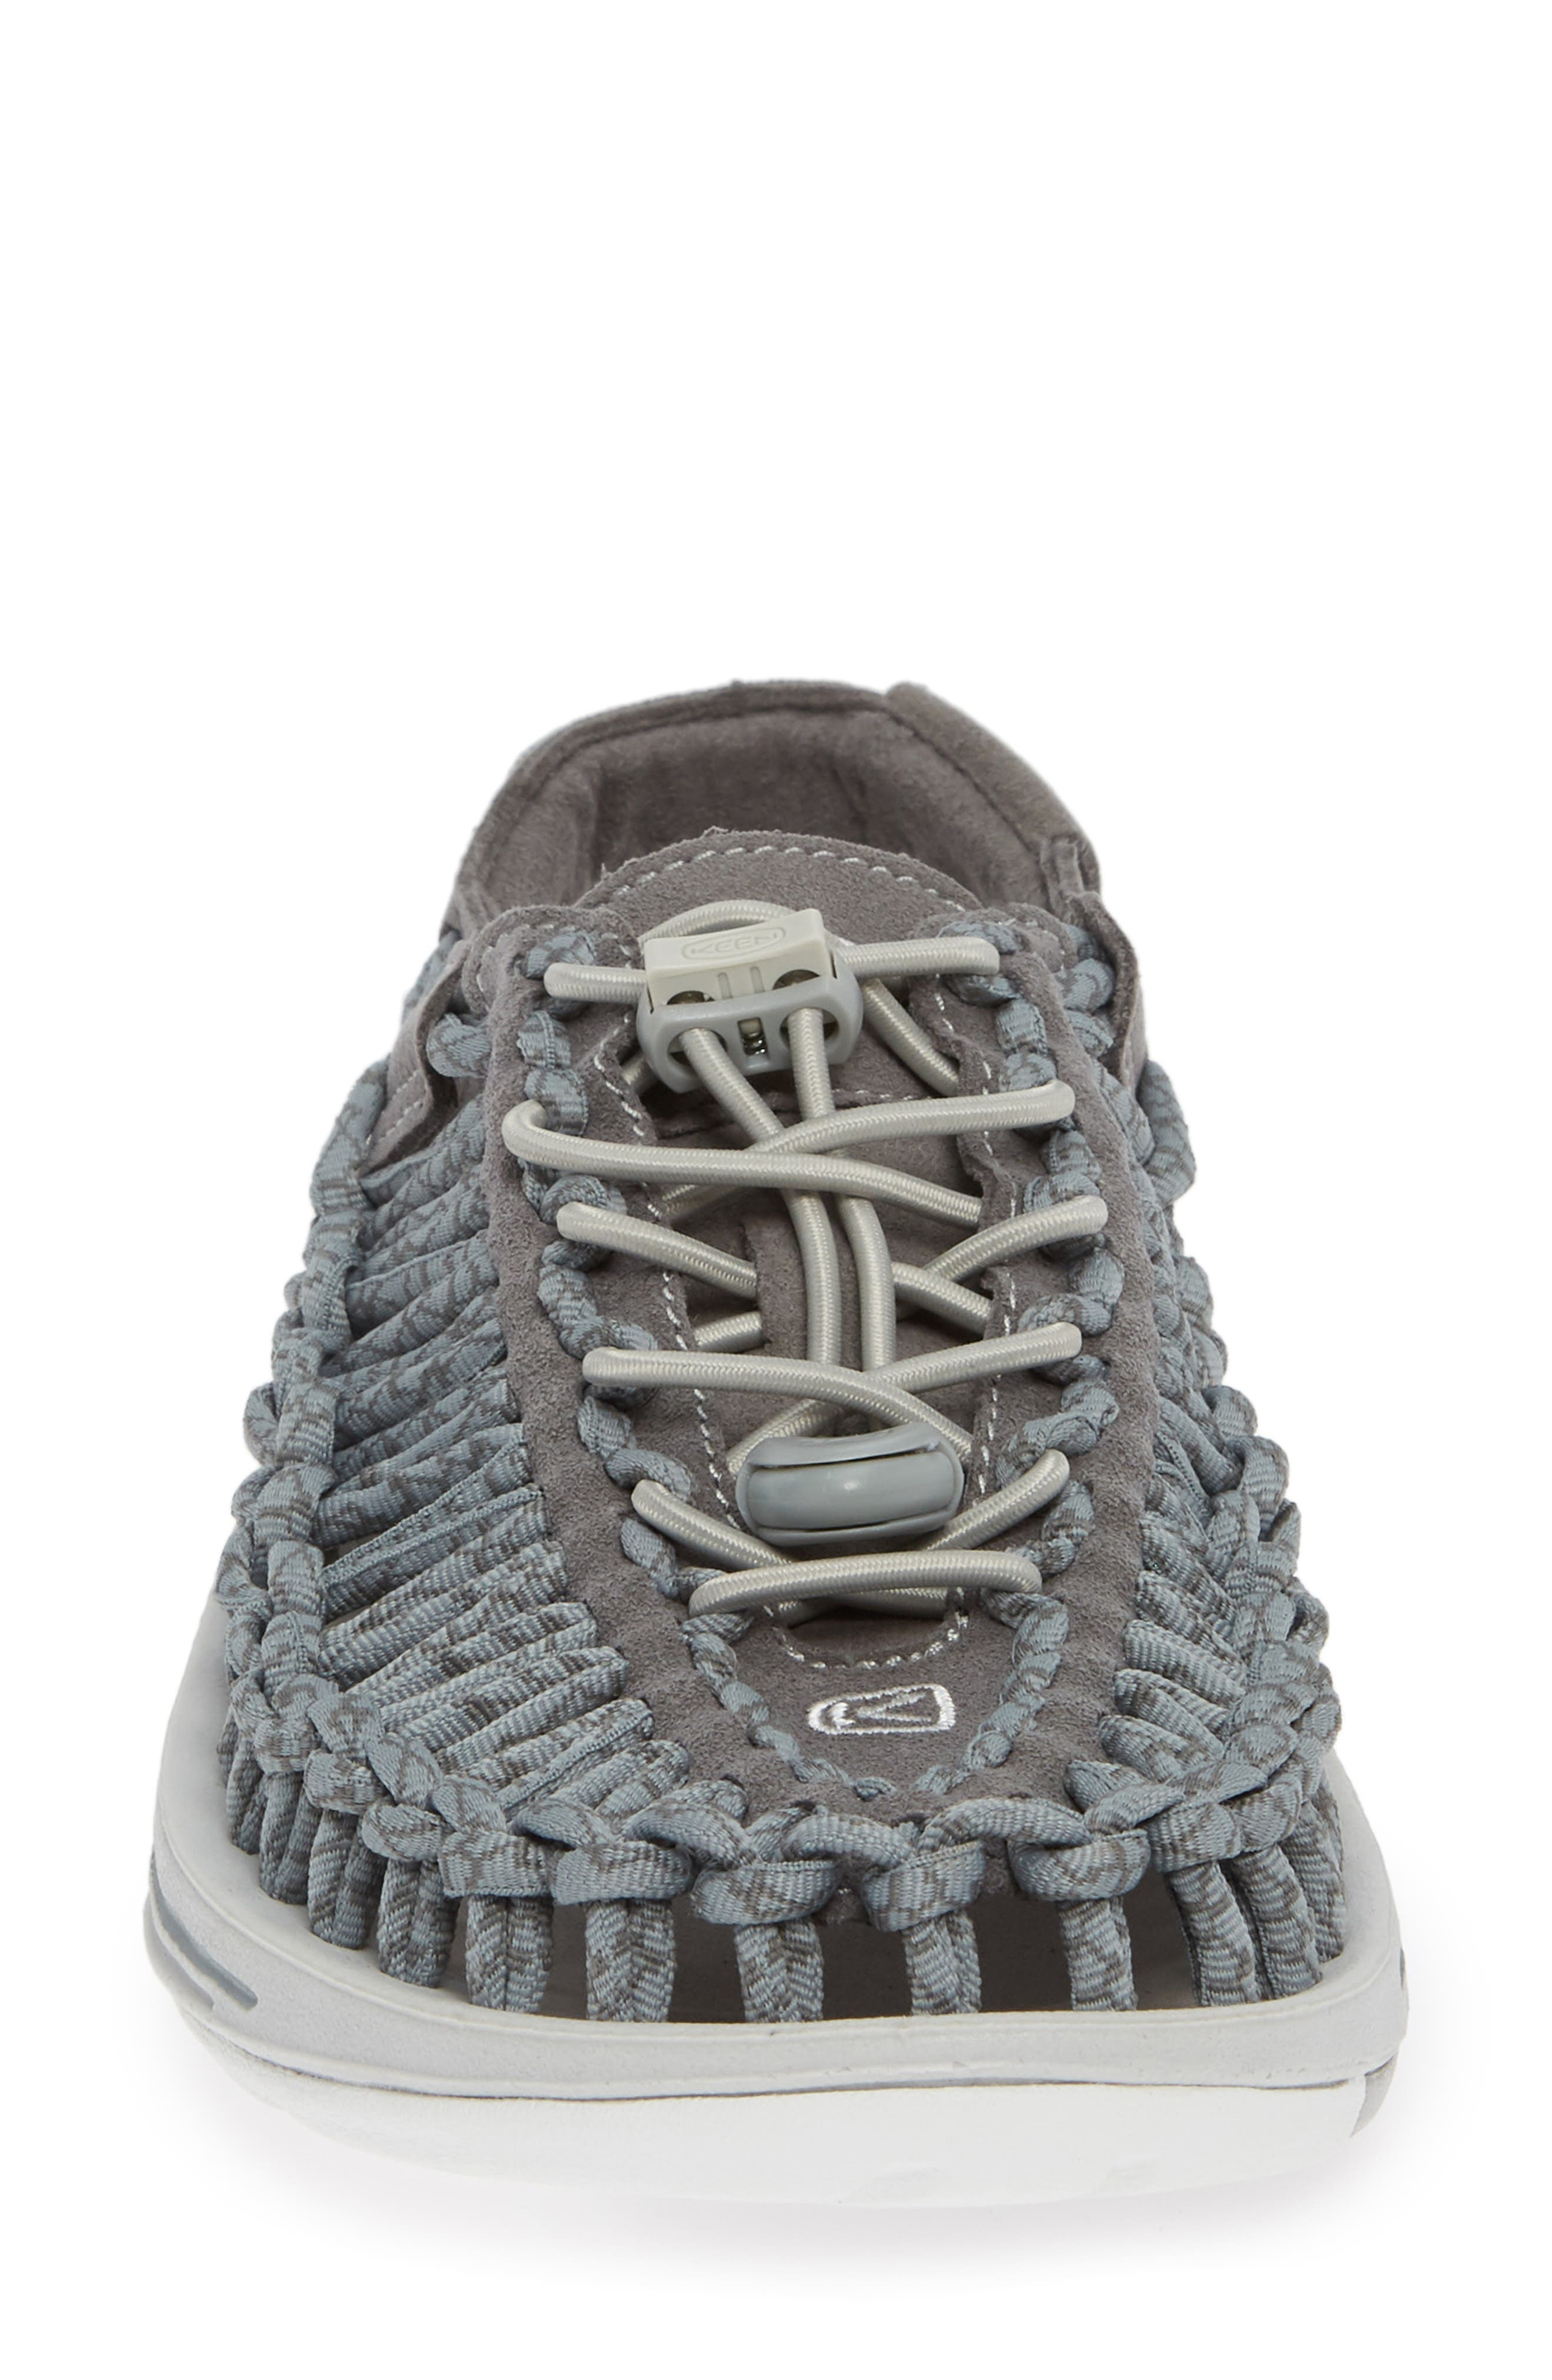 'Uneek' Water Sneaker,                             Alternate thumbnail 4, color,                             NEUTRAL GRAY/ GARGOYLE